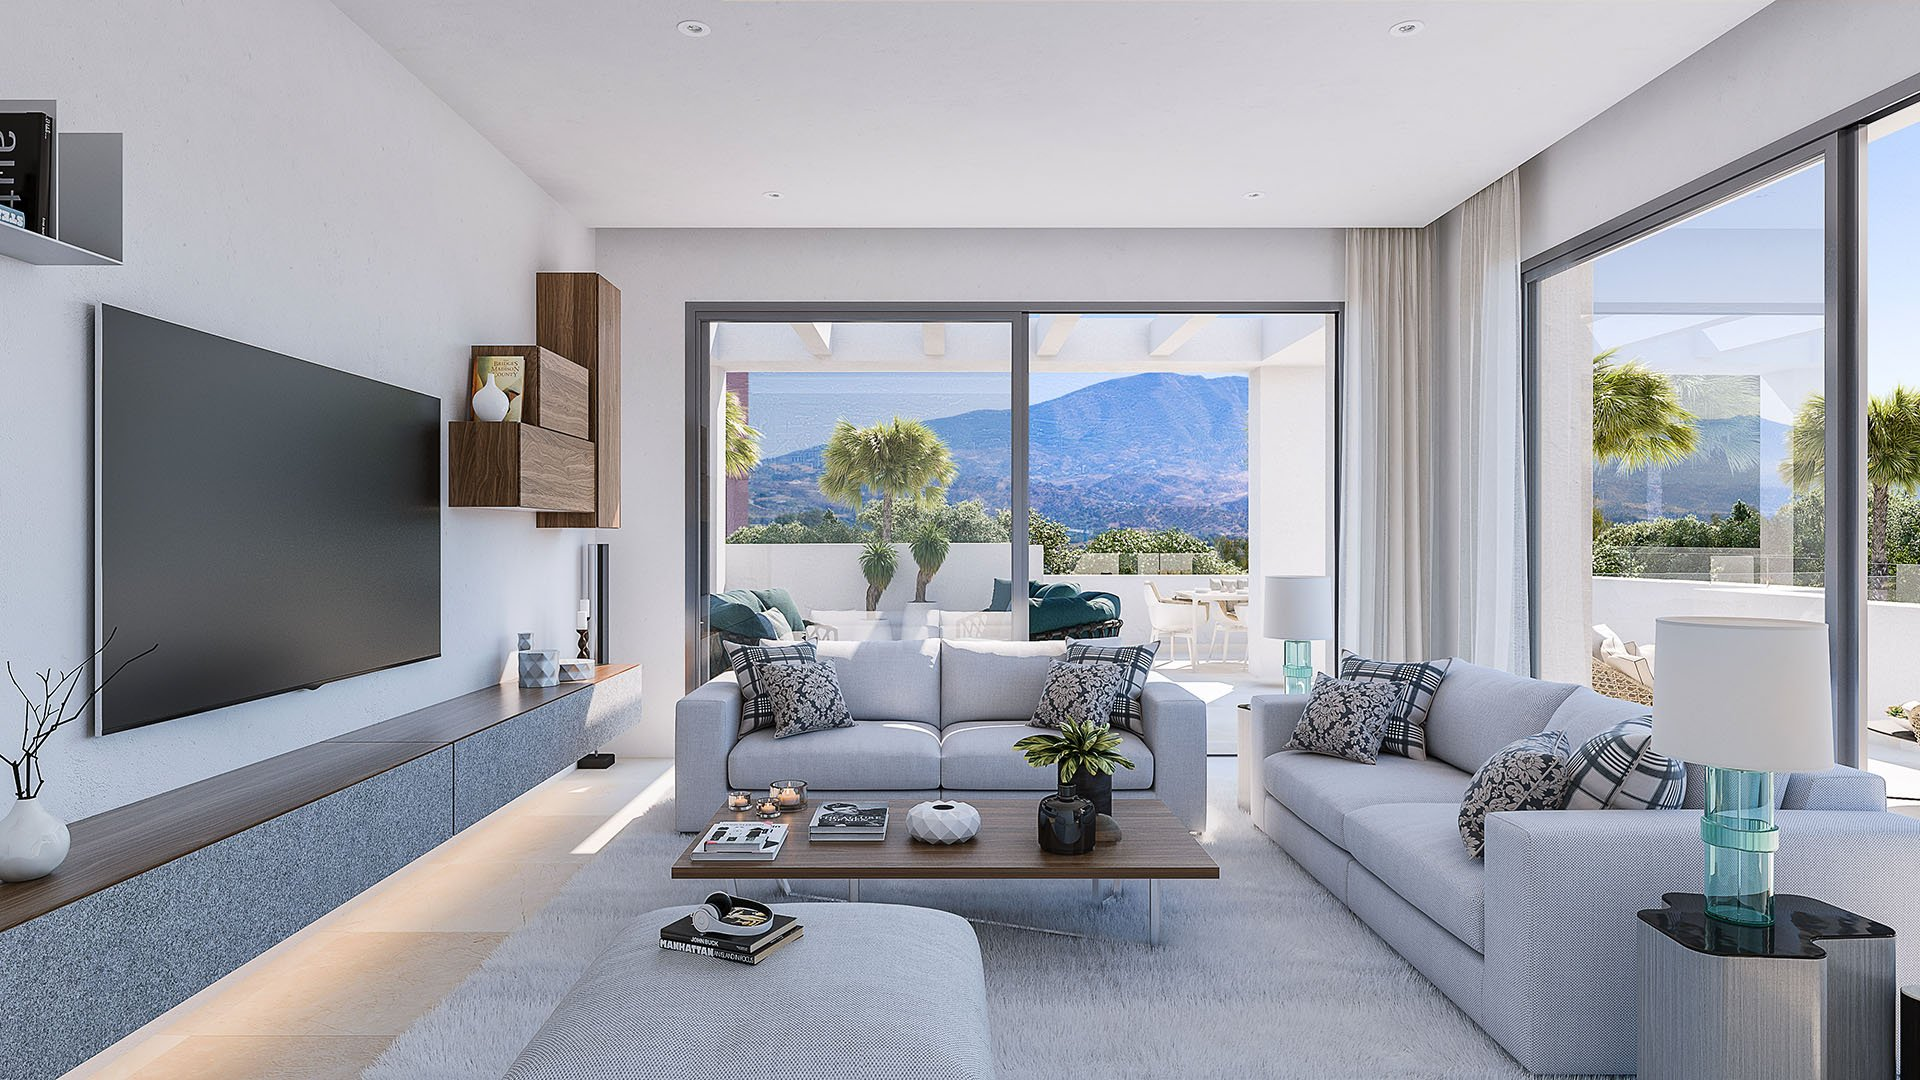 Elite: Luxury penthouses in an idyllic environment